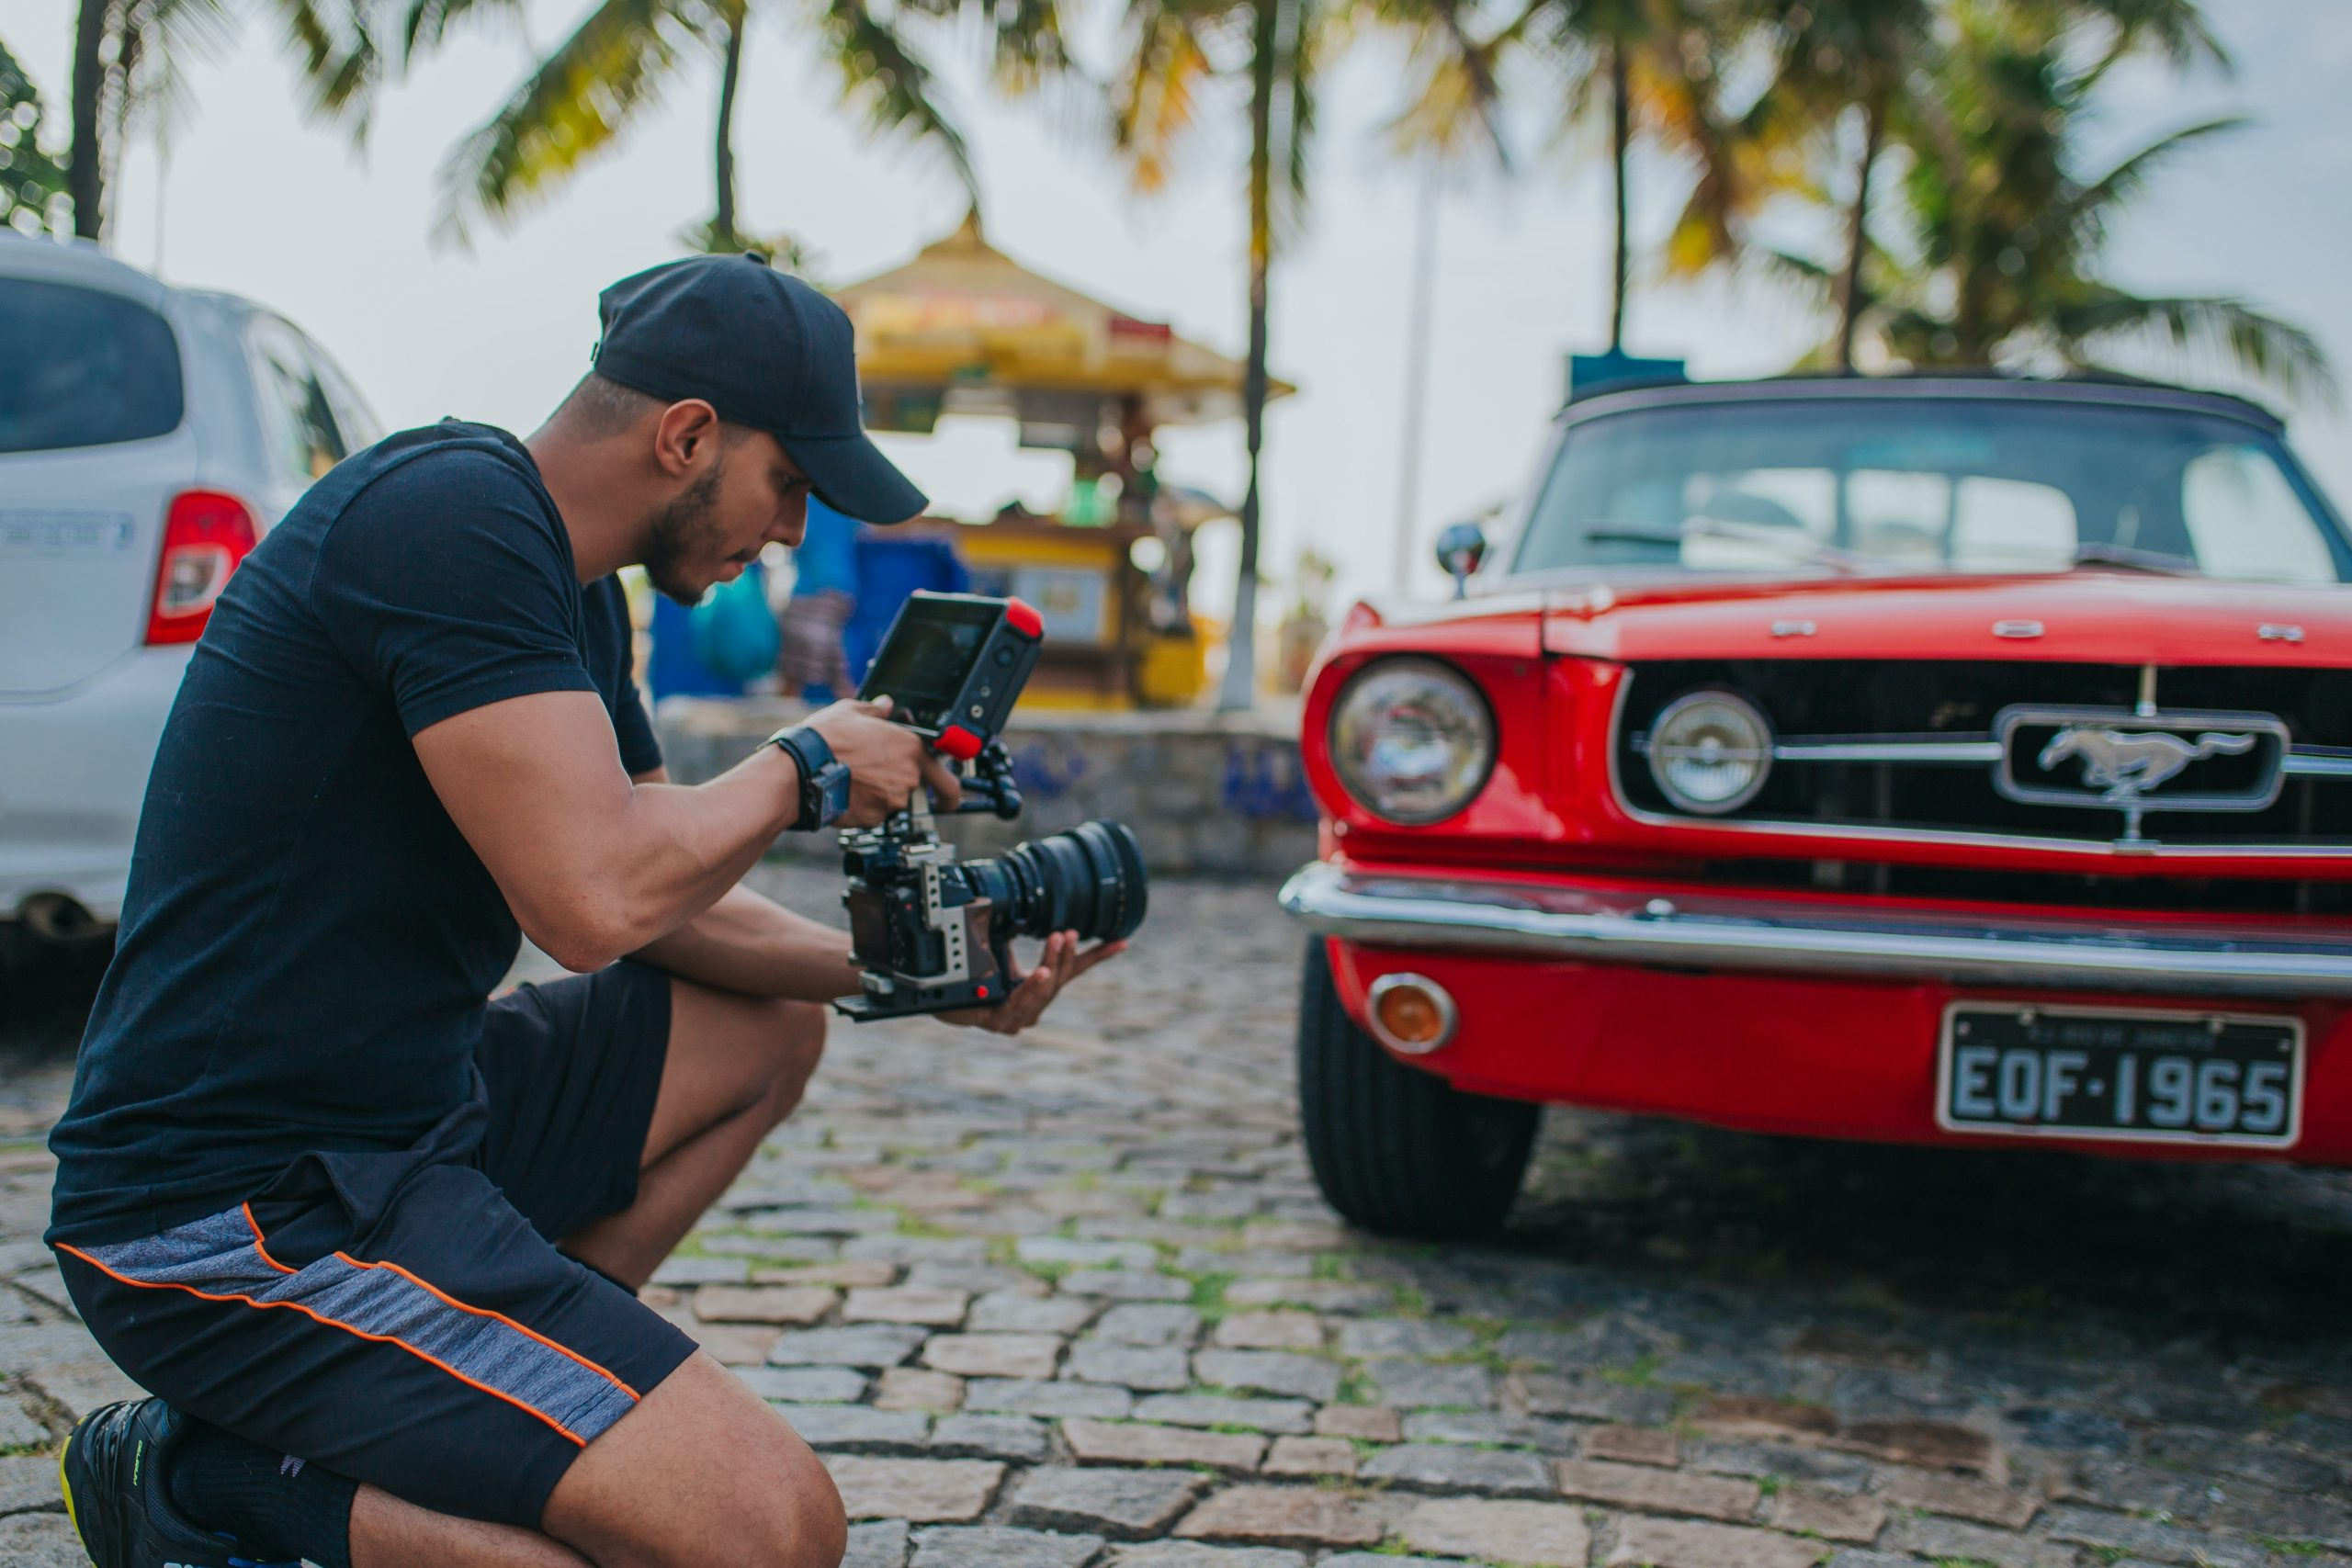 Show Off Your Toys With The Best Camera For Car Photography